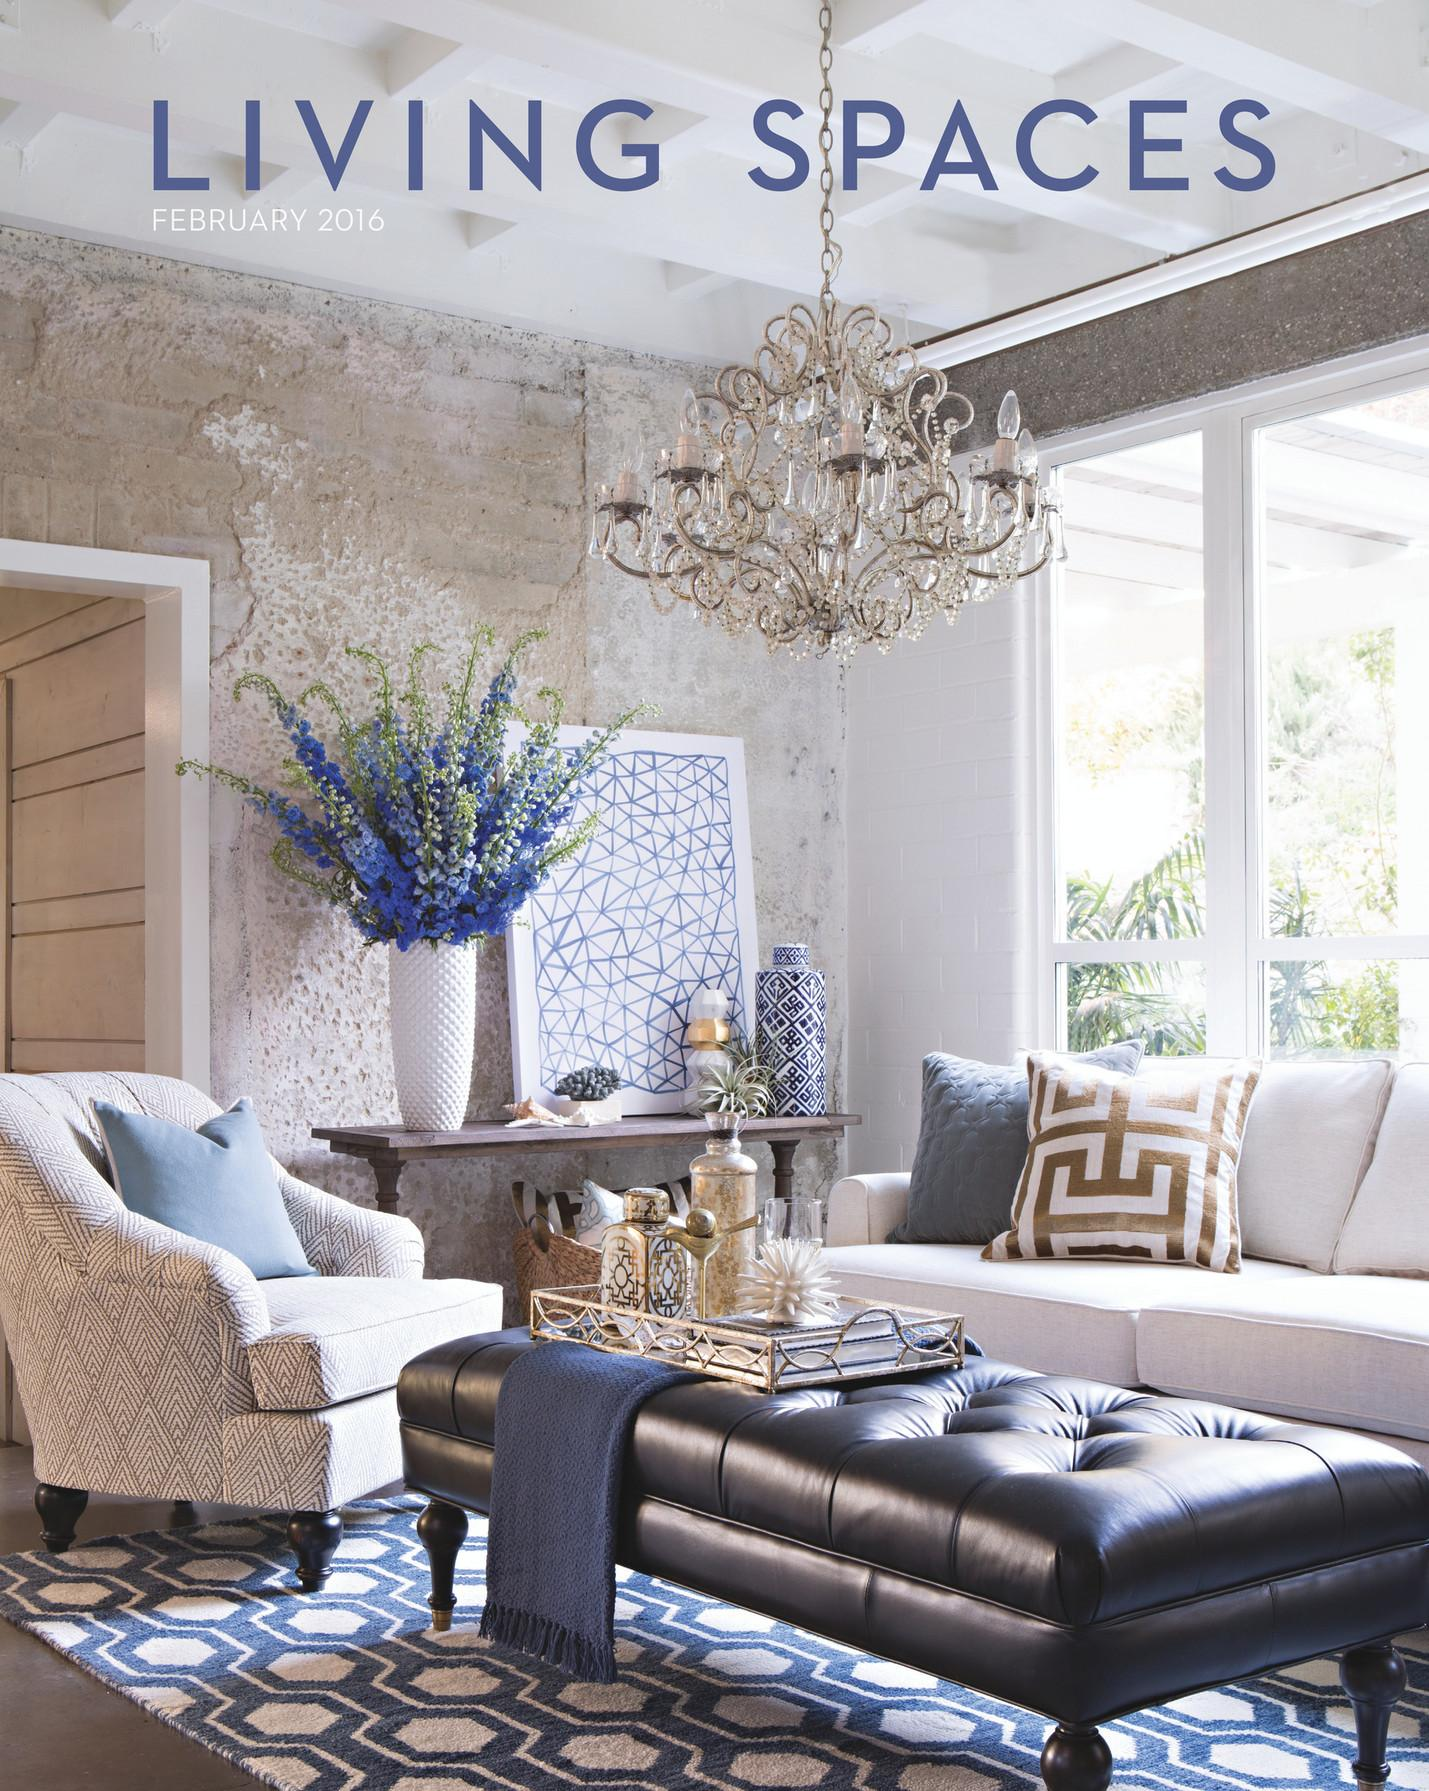 Living Spaces Product Catalog February 2016